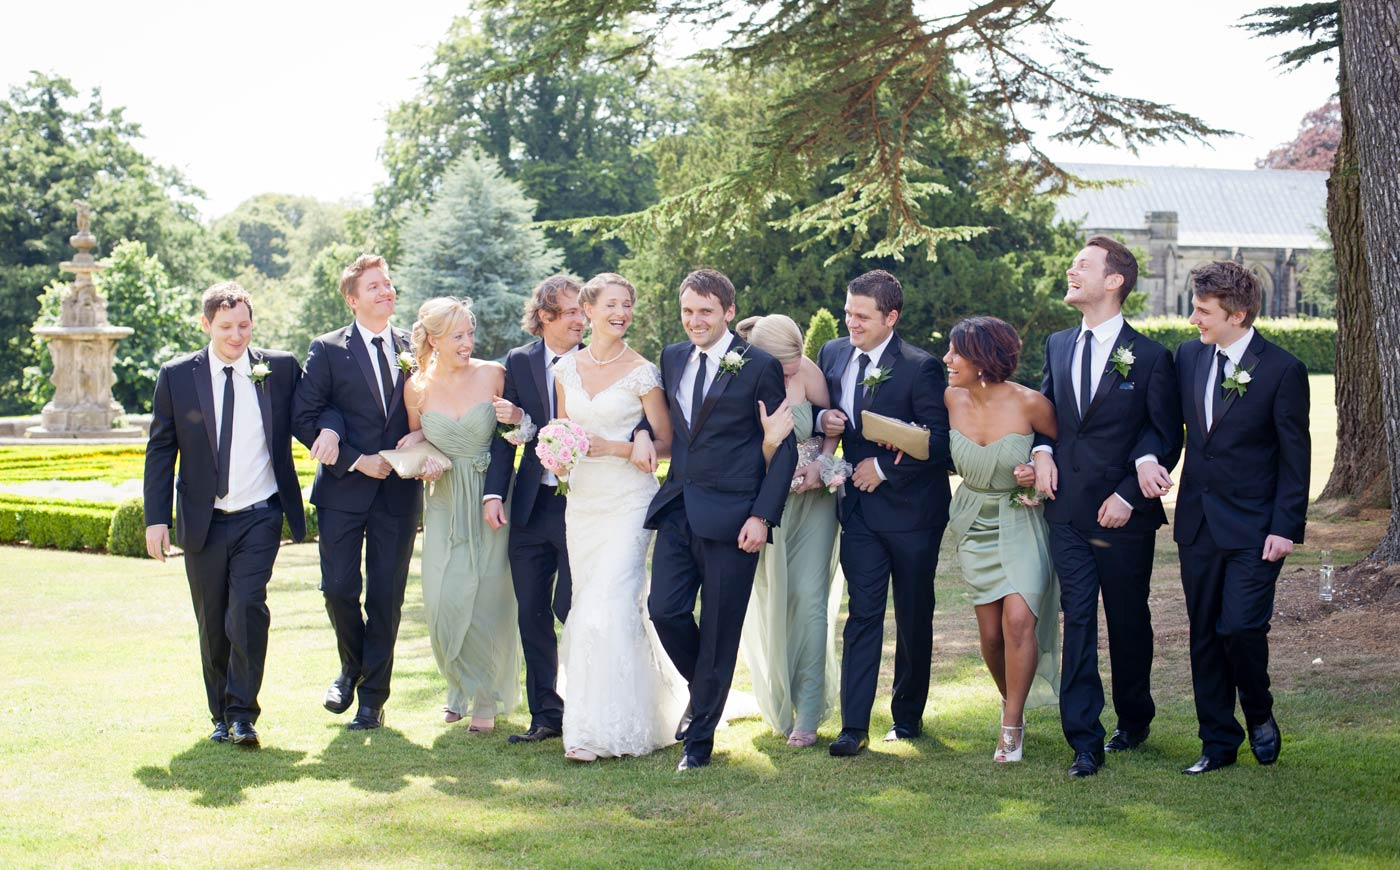 Weddings at Sledmere House, a venue in East Yorkshire